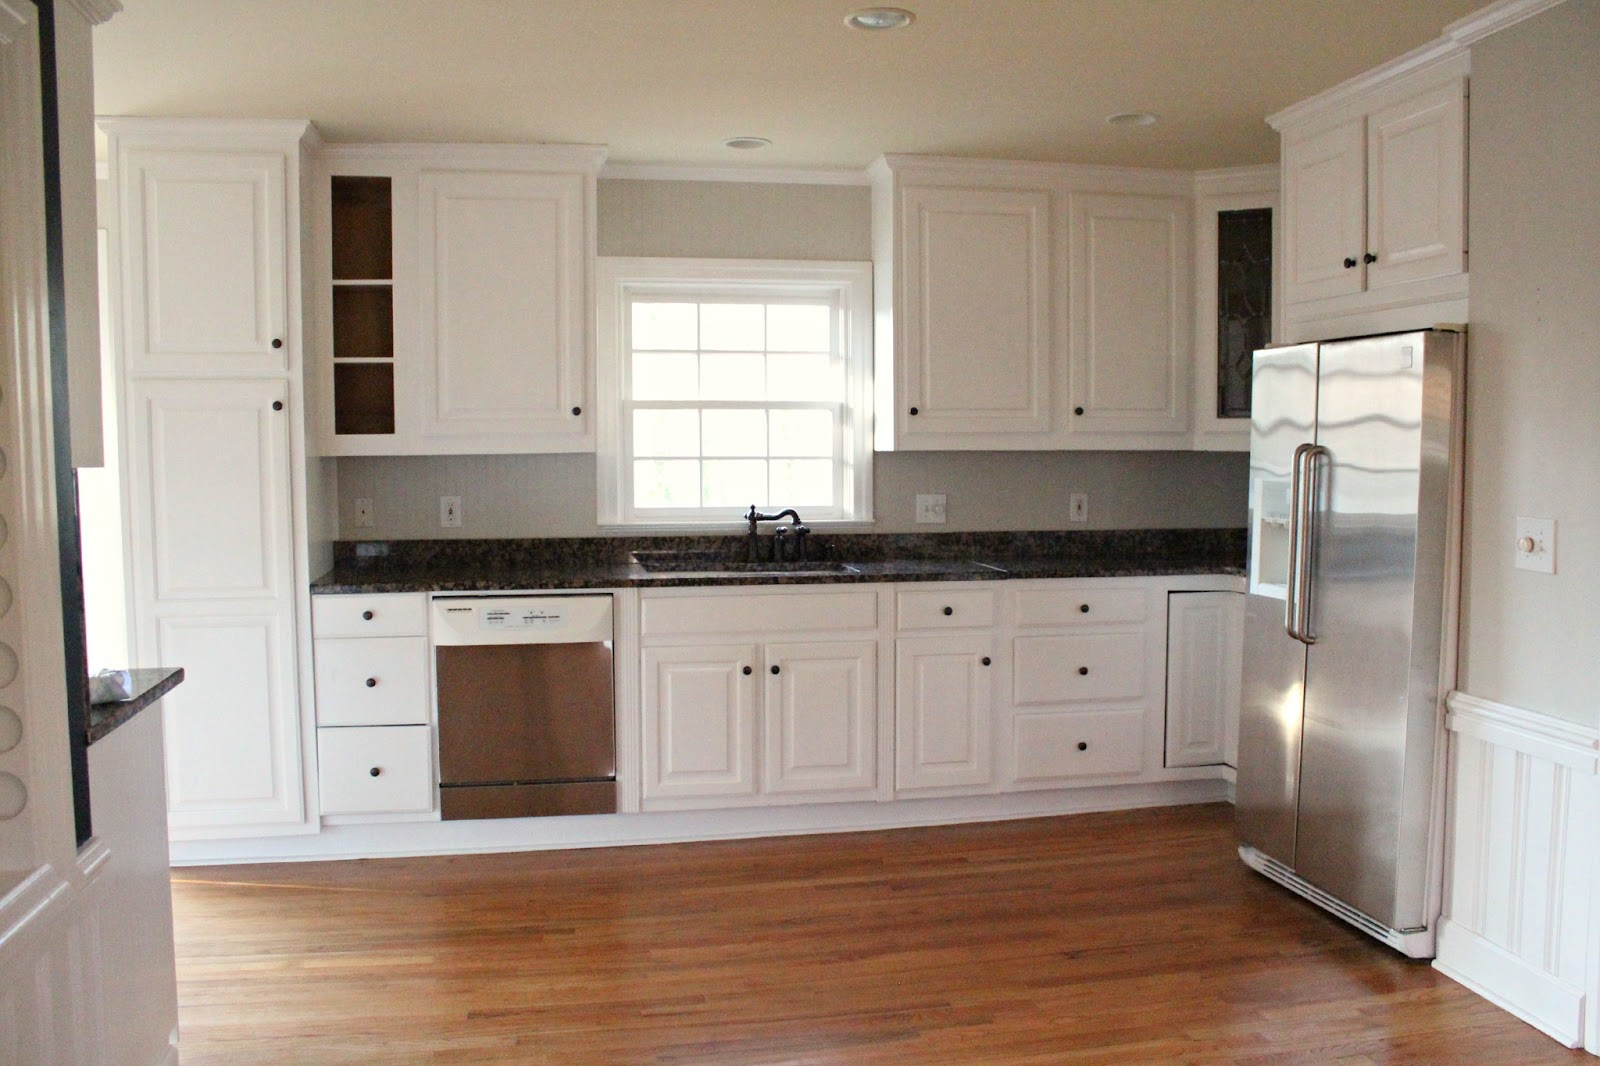 Picture of: refinish kitchen cabinets white